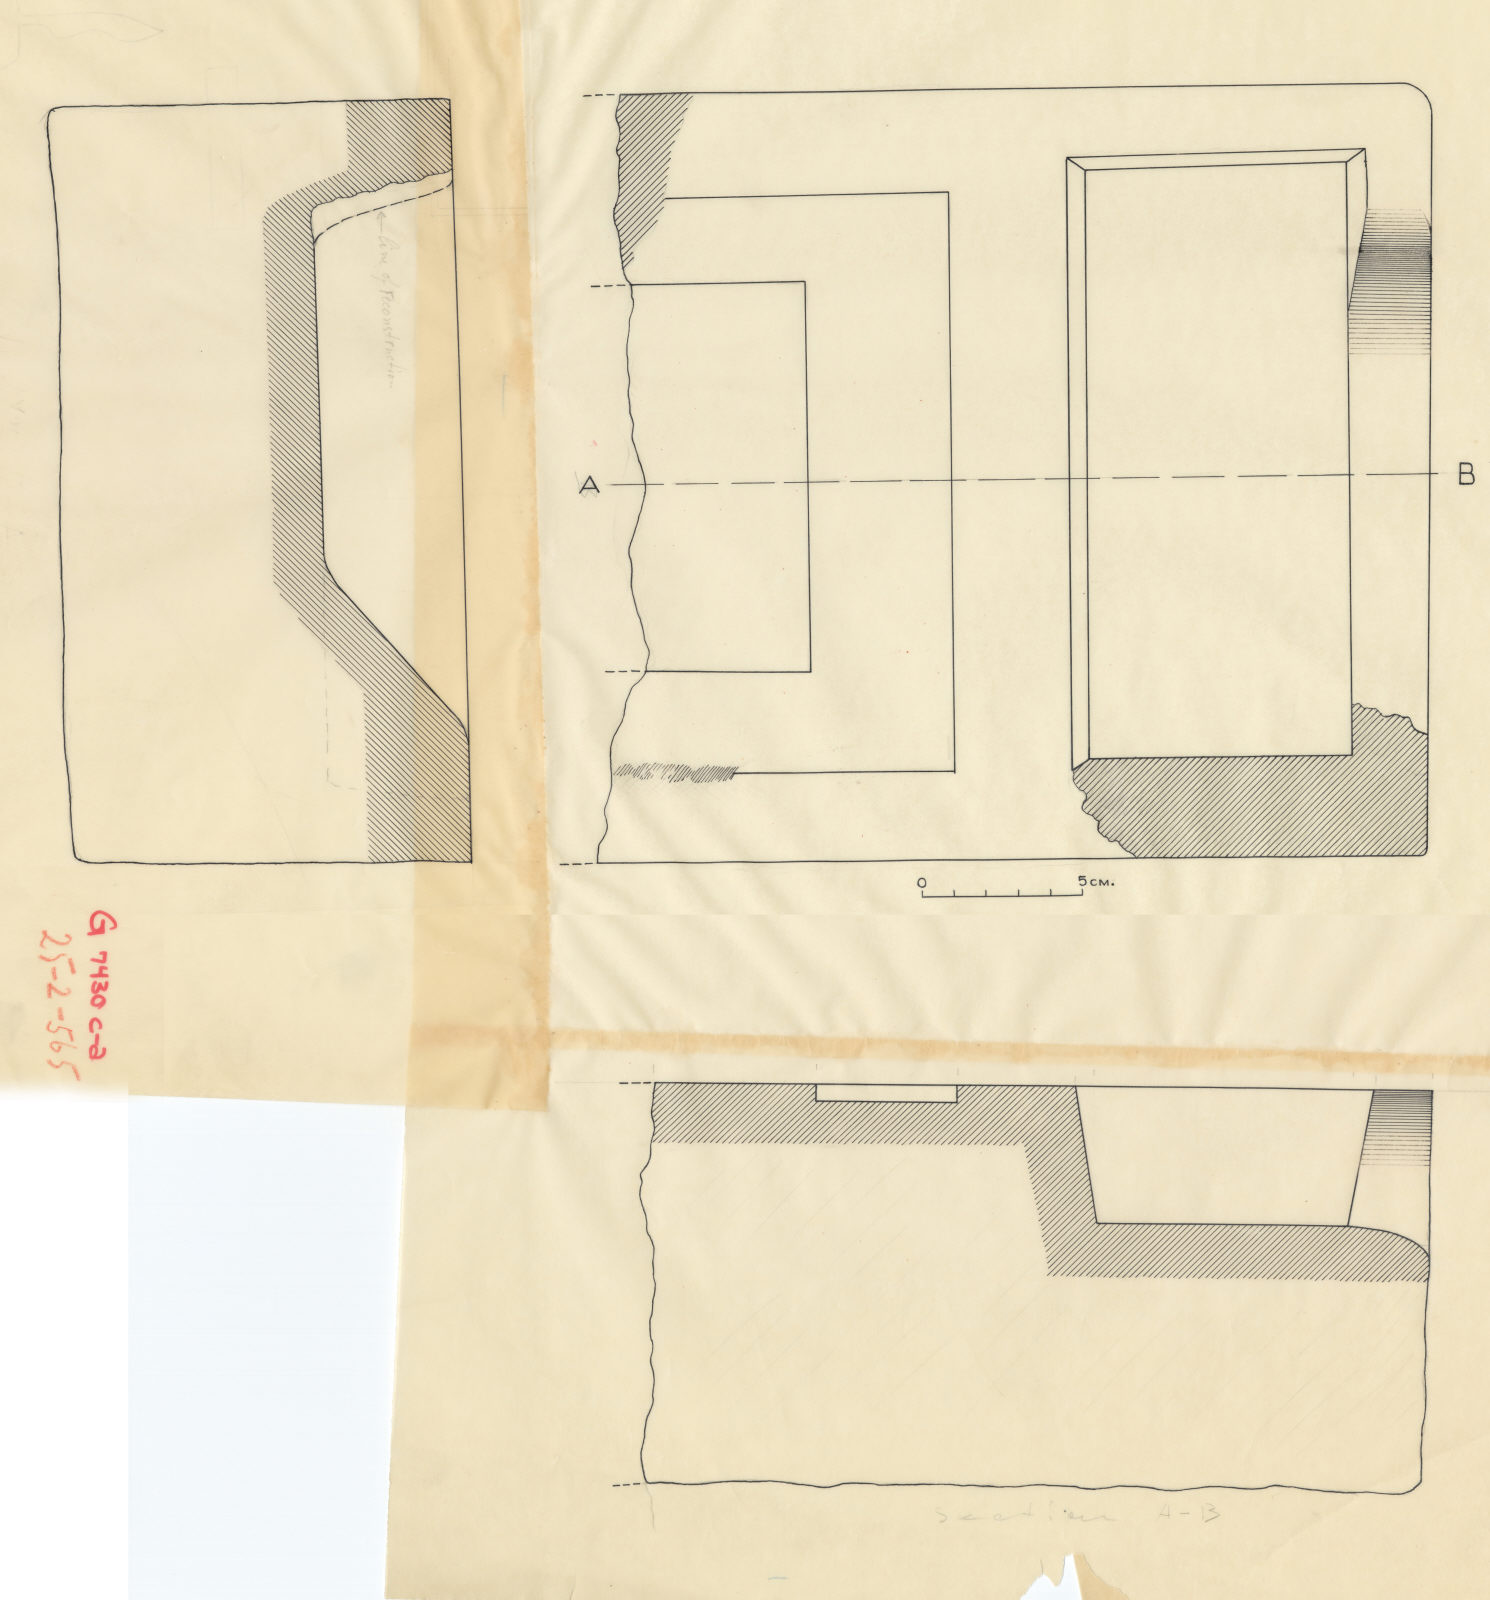 Drawings: G 7430: offering basin, plan and section